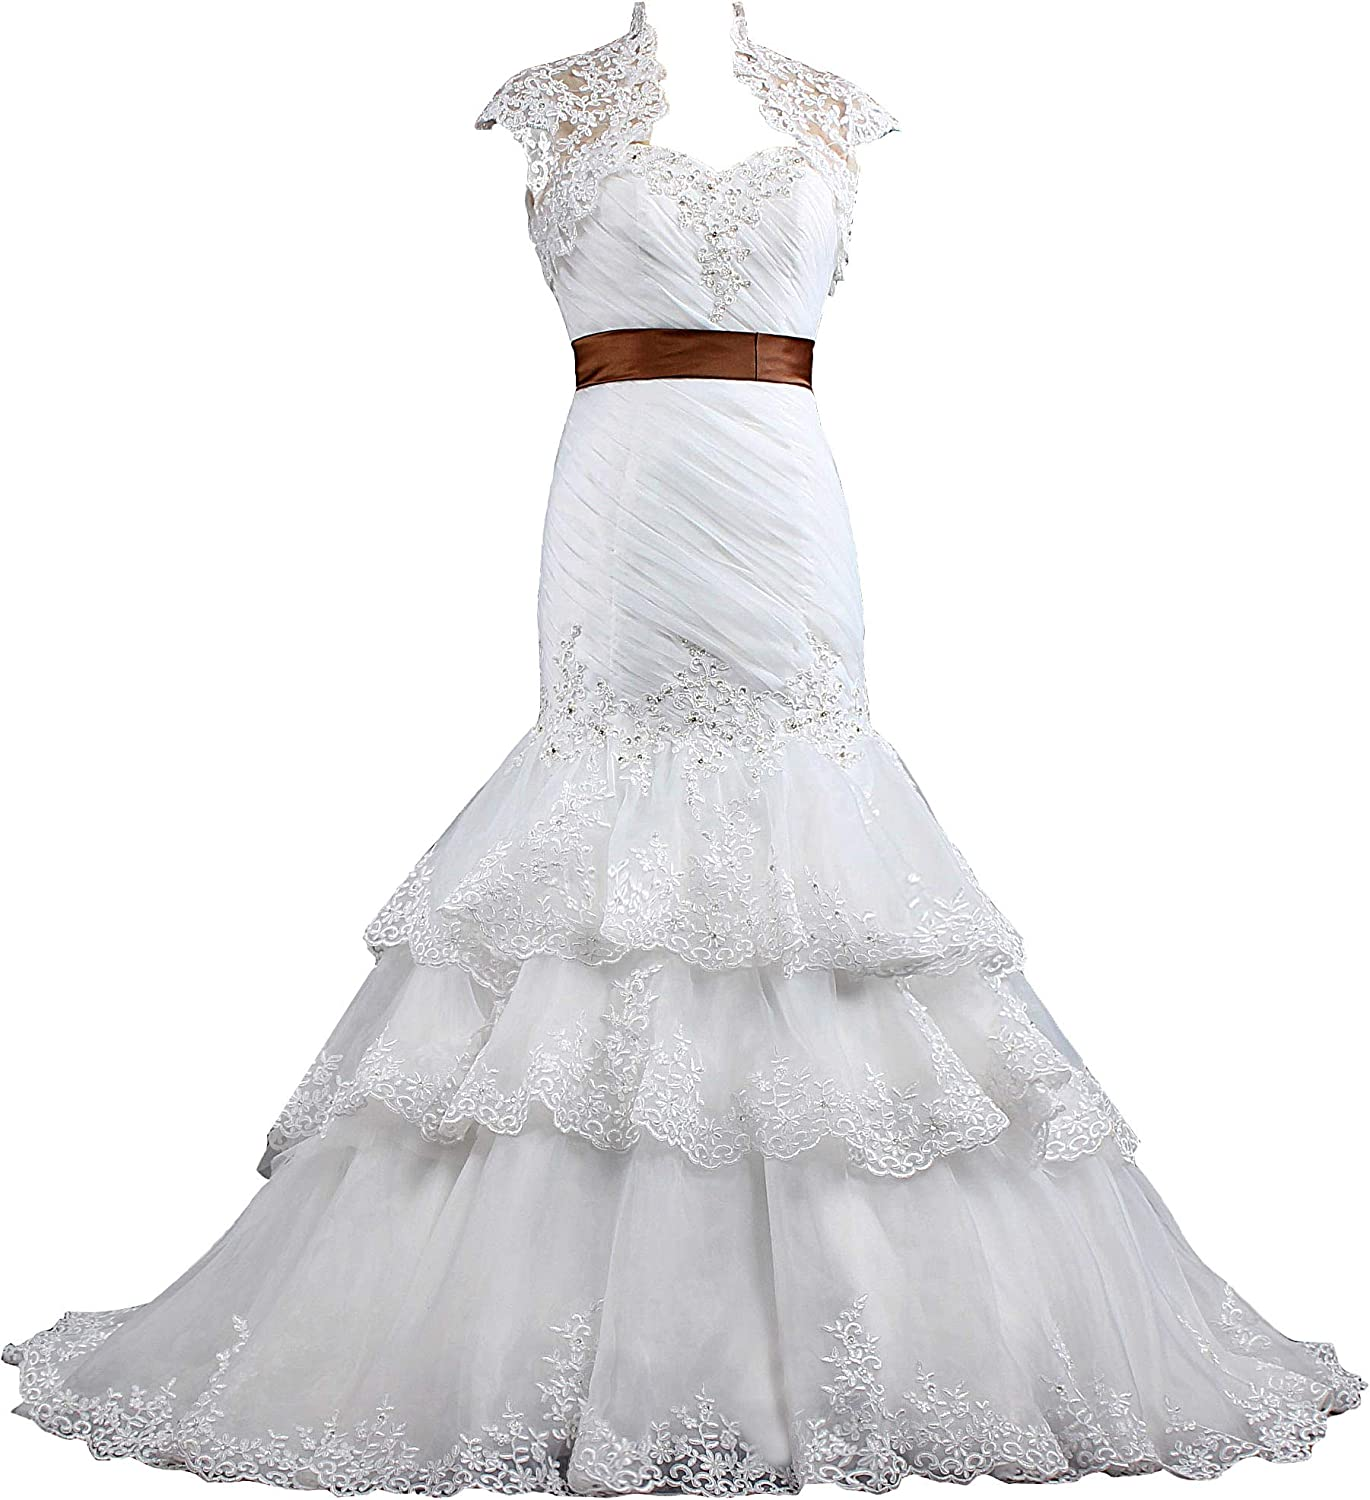 ANTS Women's Formal Mermaid Wedding Dresses Bridal Gowns with Jacket